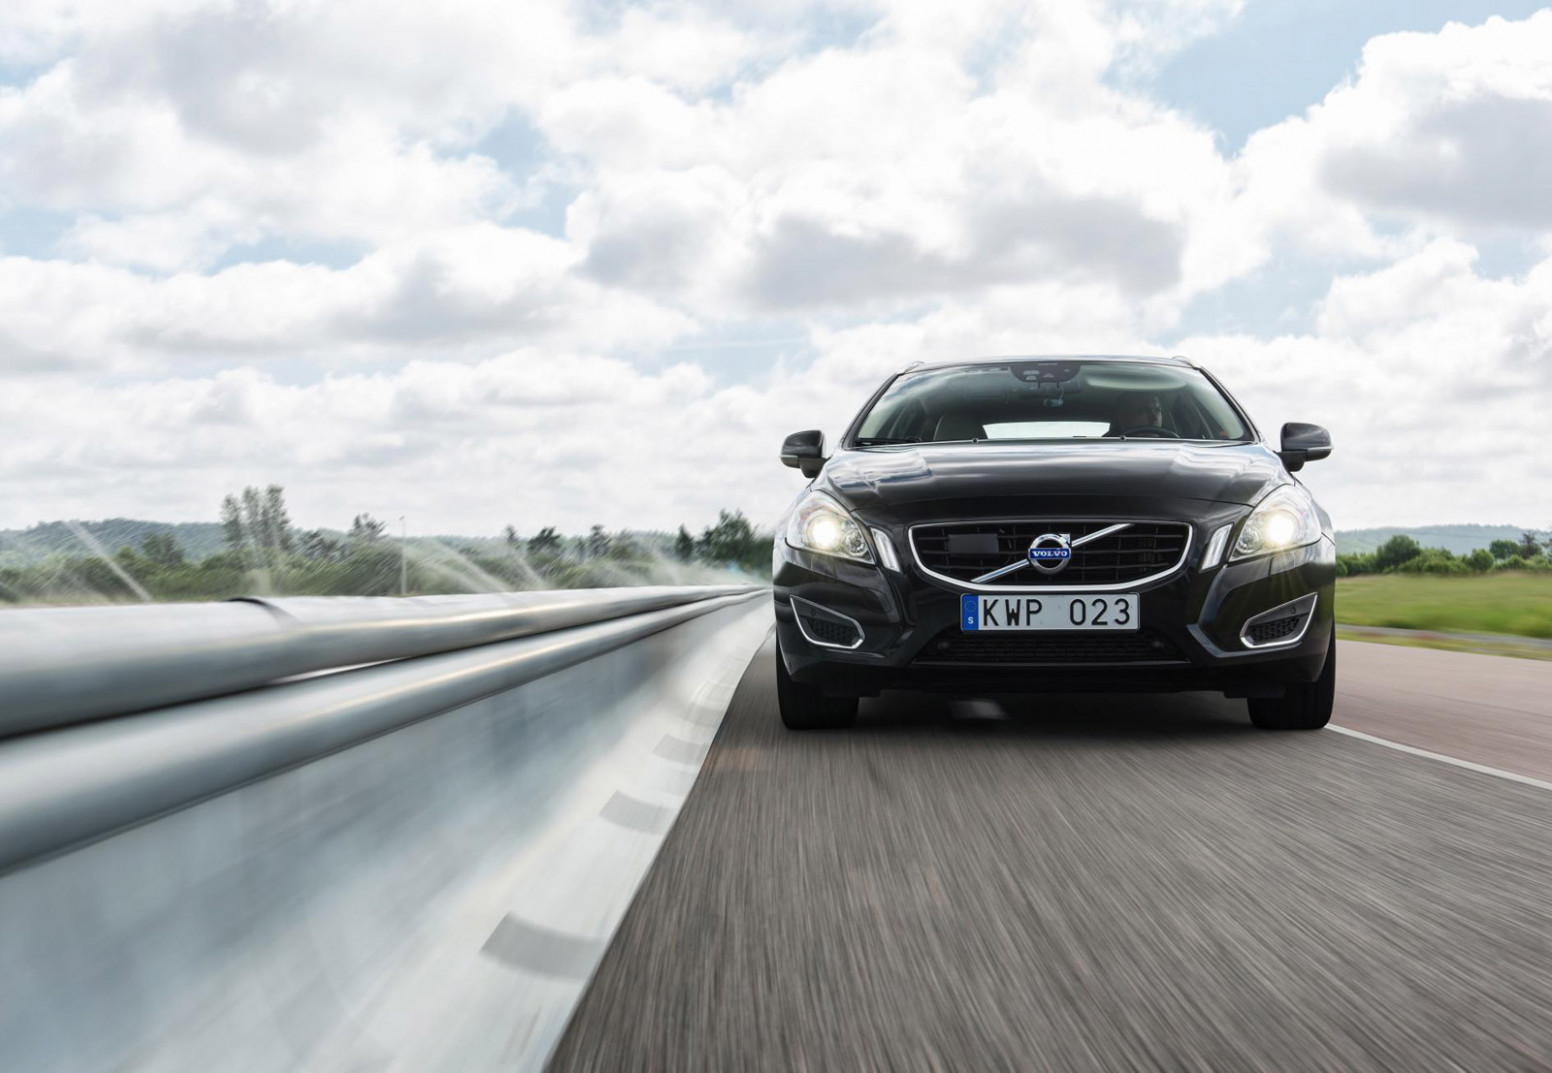 New Concept Volvo 2022 Safety Goal